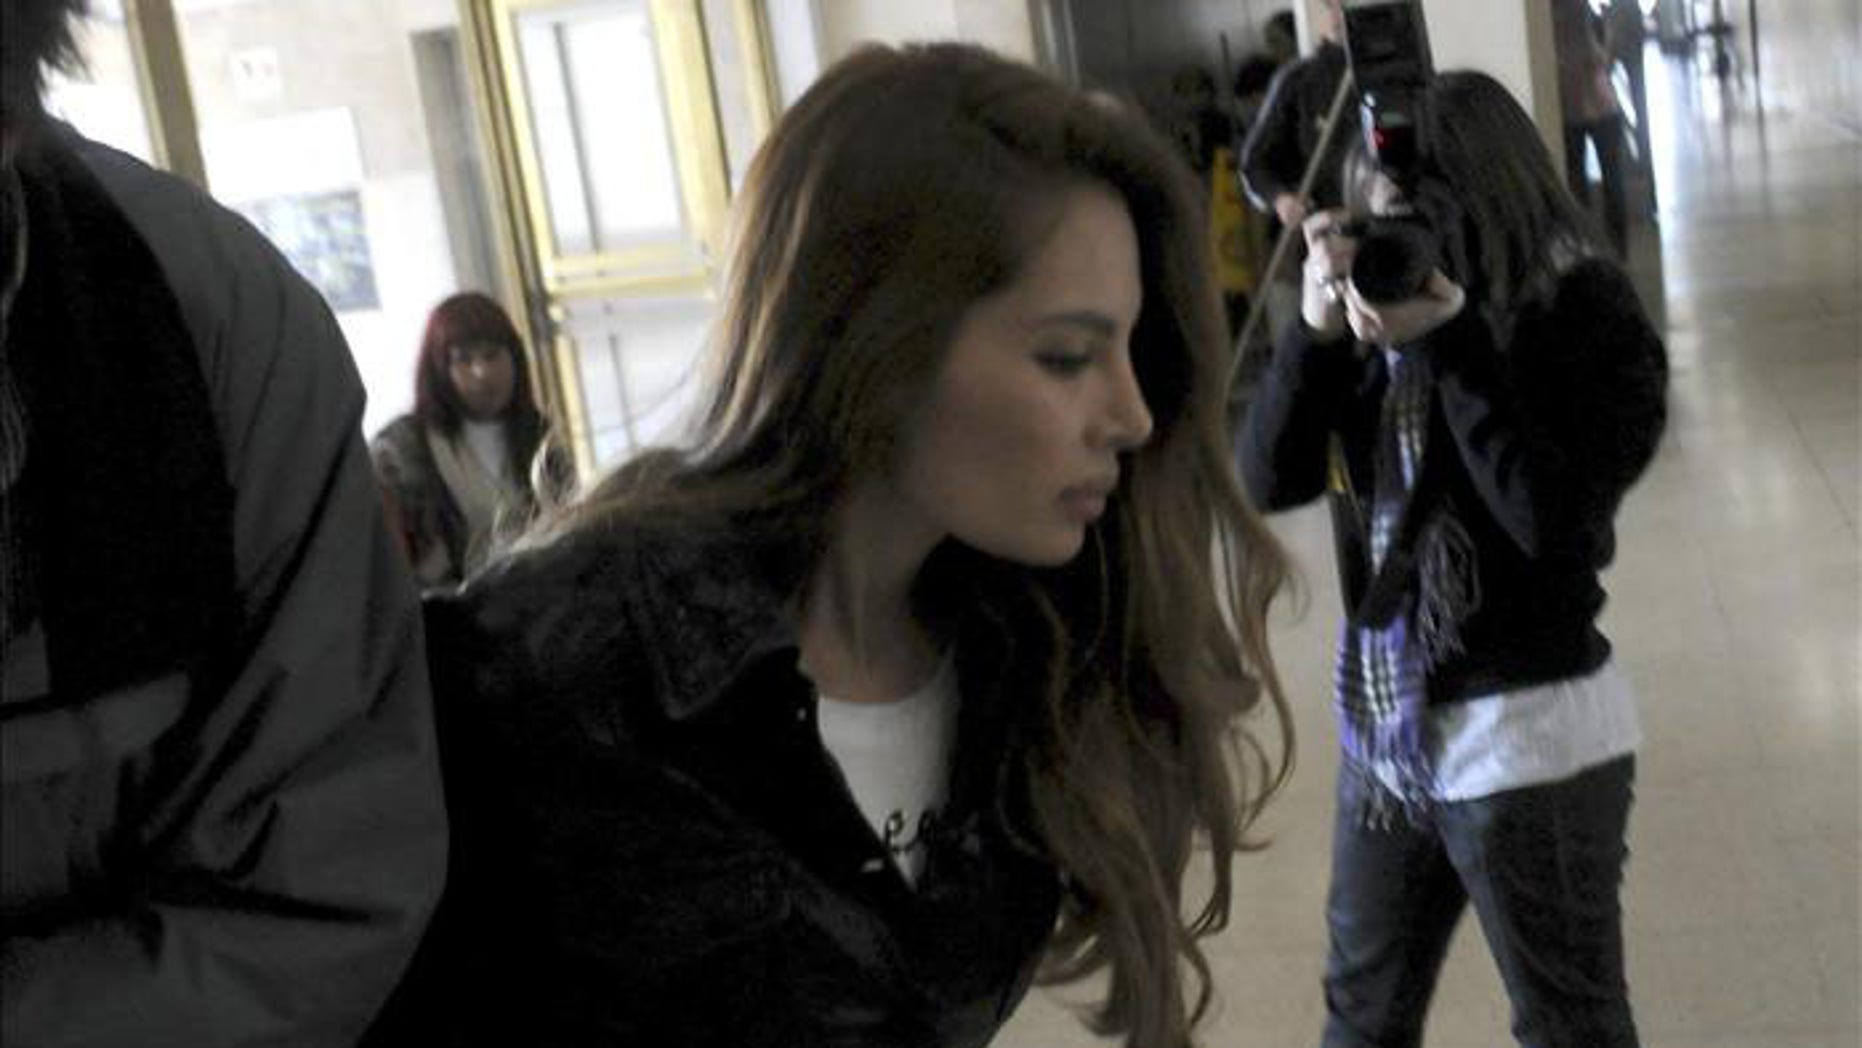 The Colombian model Angie Sanclemente Valencia arrives for her trial in Argentina.